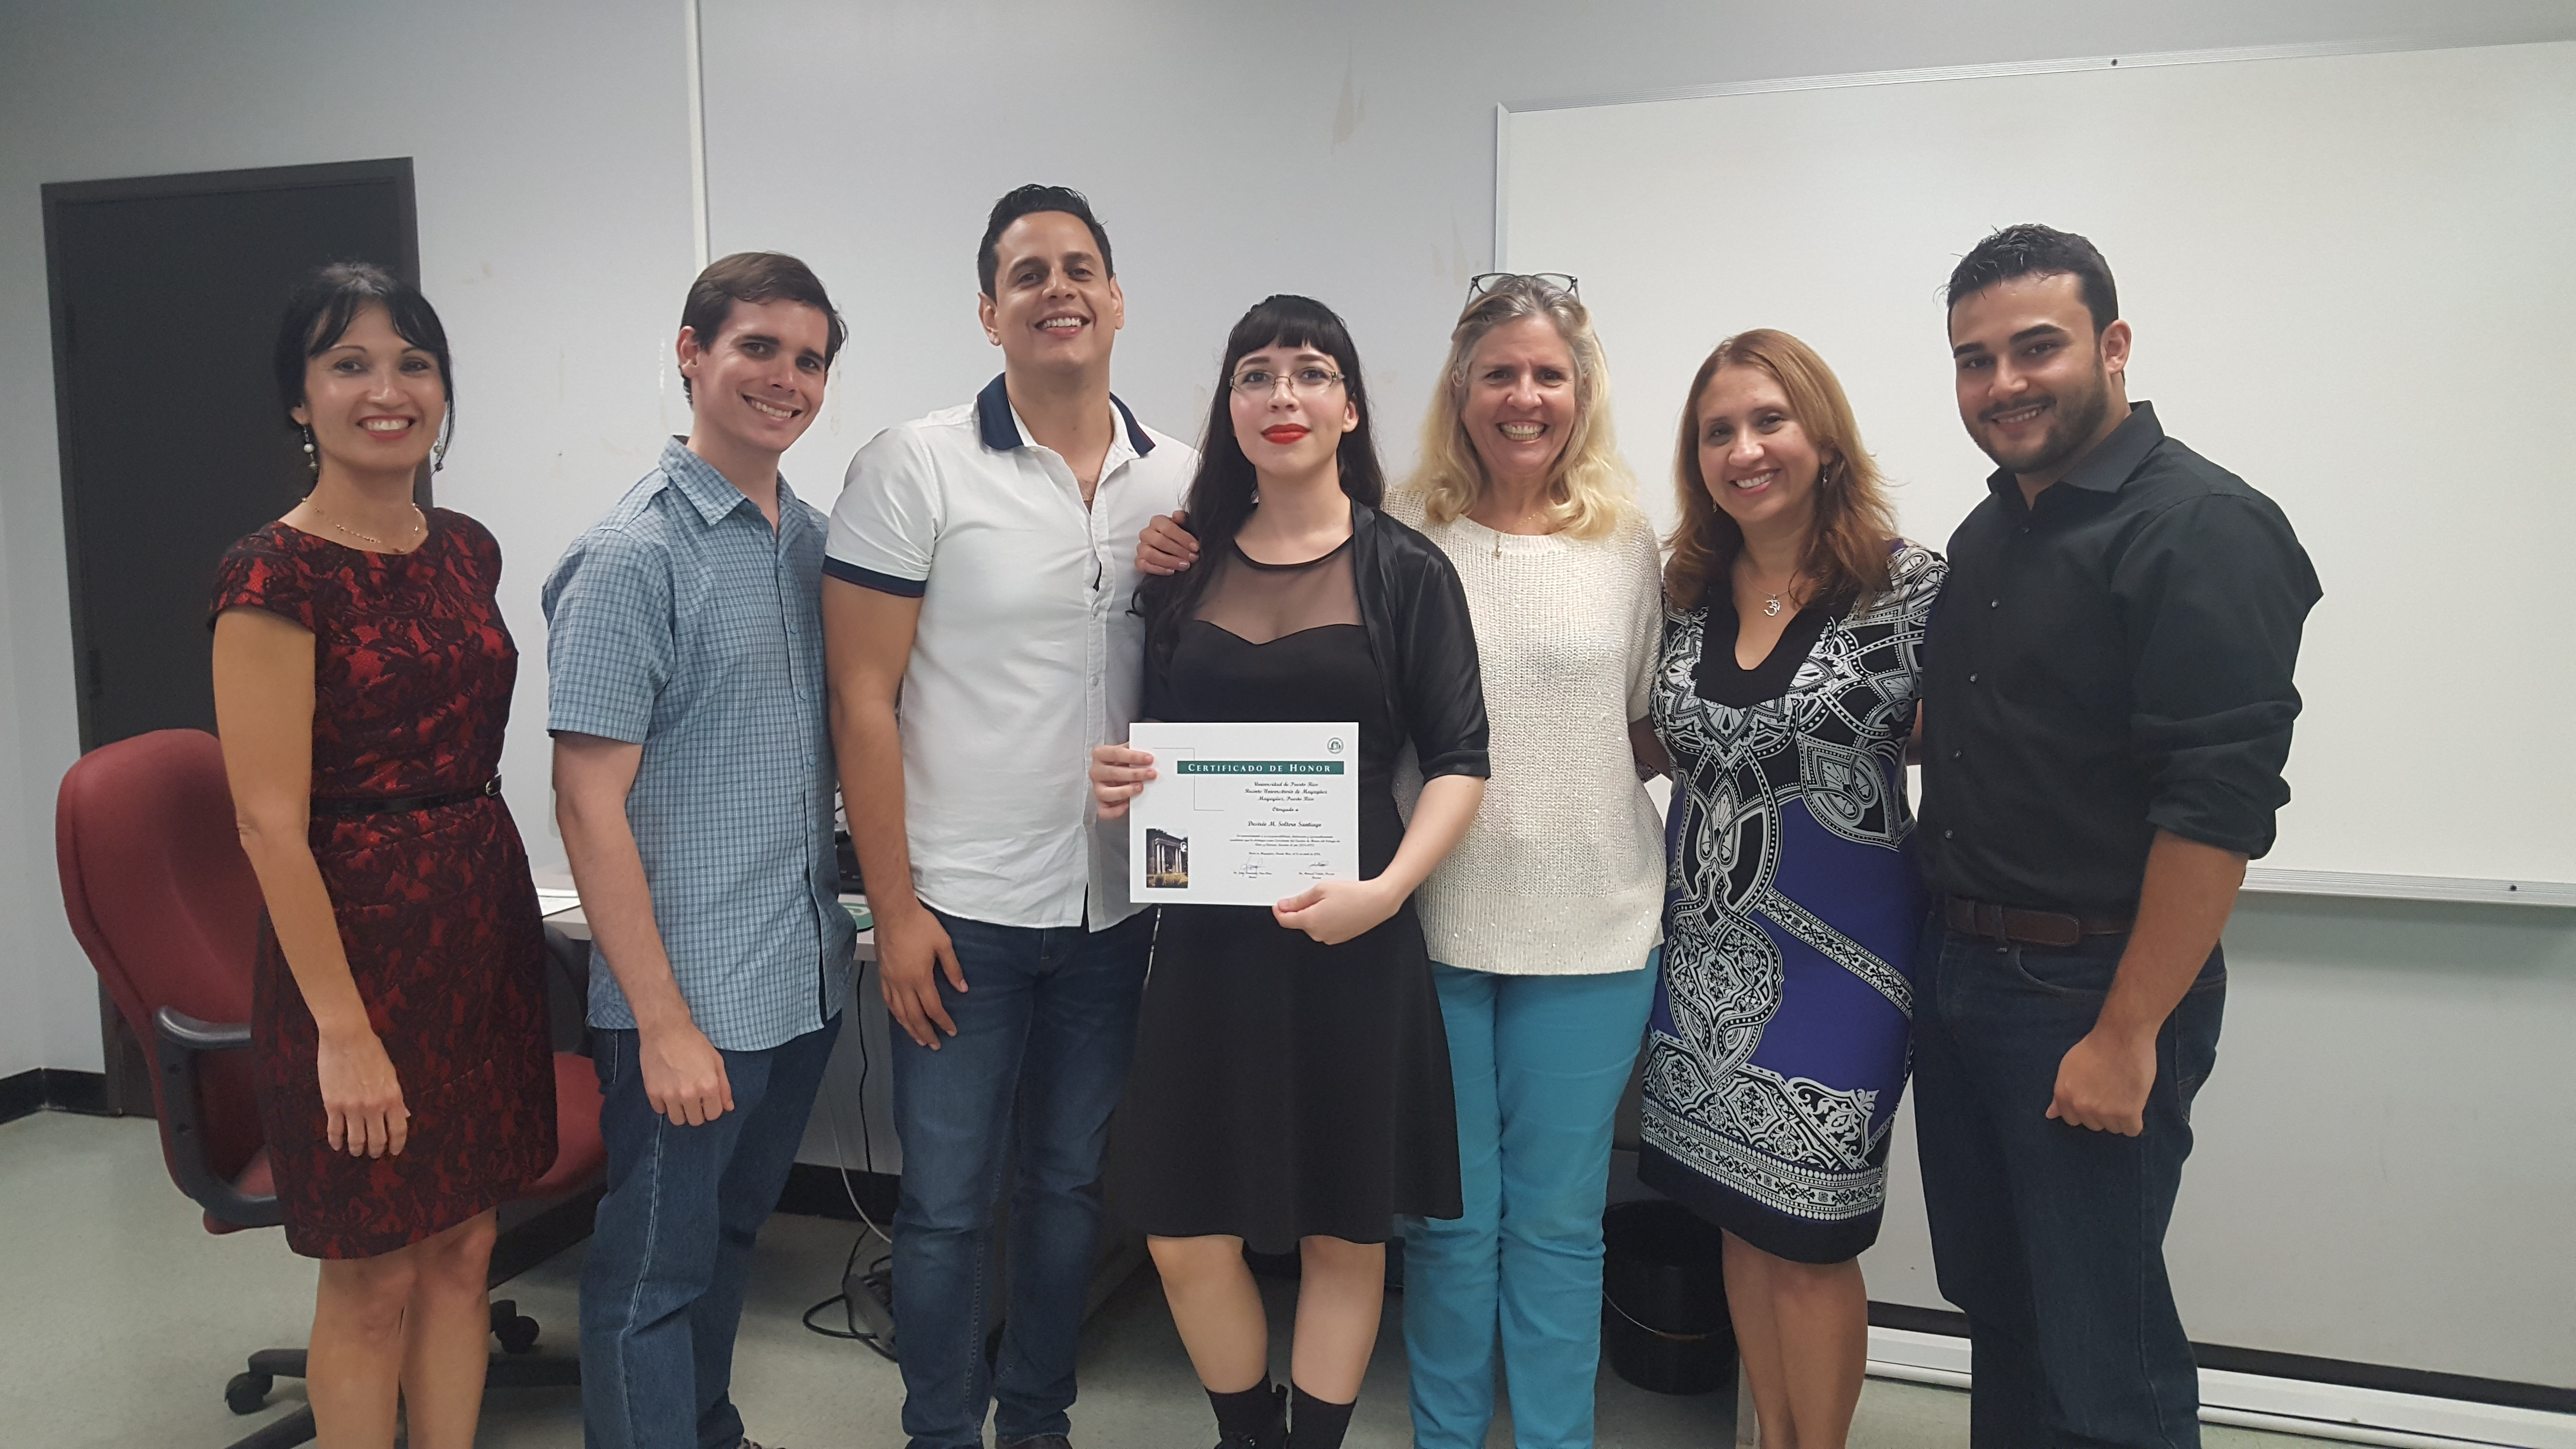 Students and professors posing for the camera at the Honor Roll Students Celebration. The student, at the middle, is holding up the certificate.